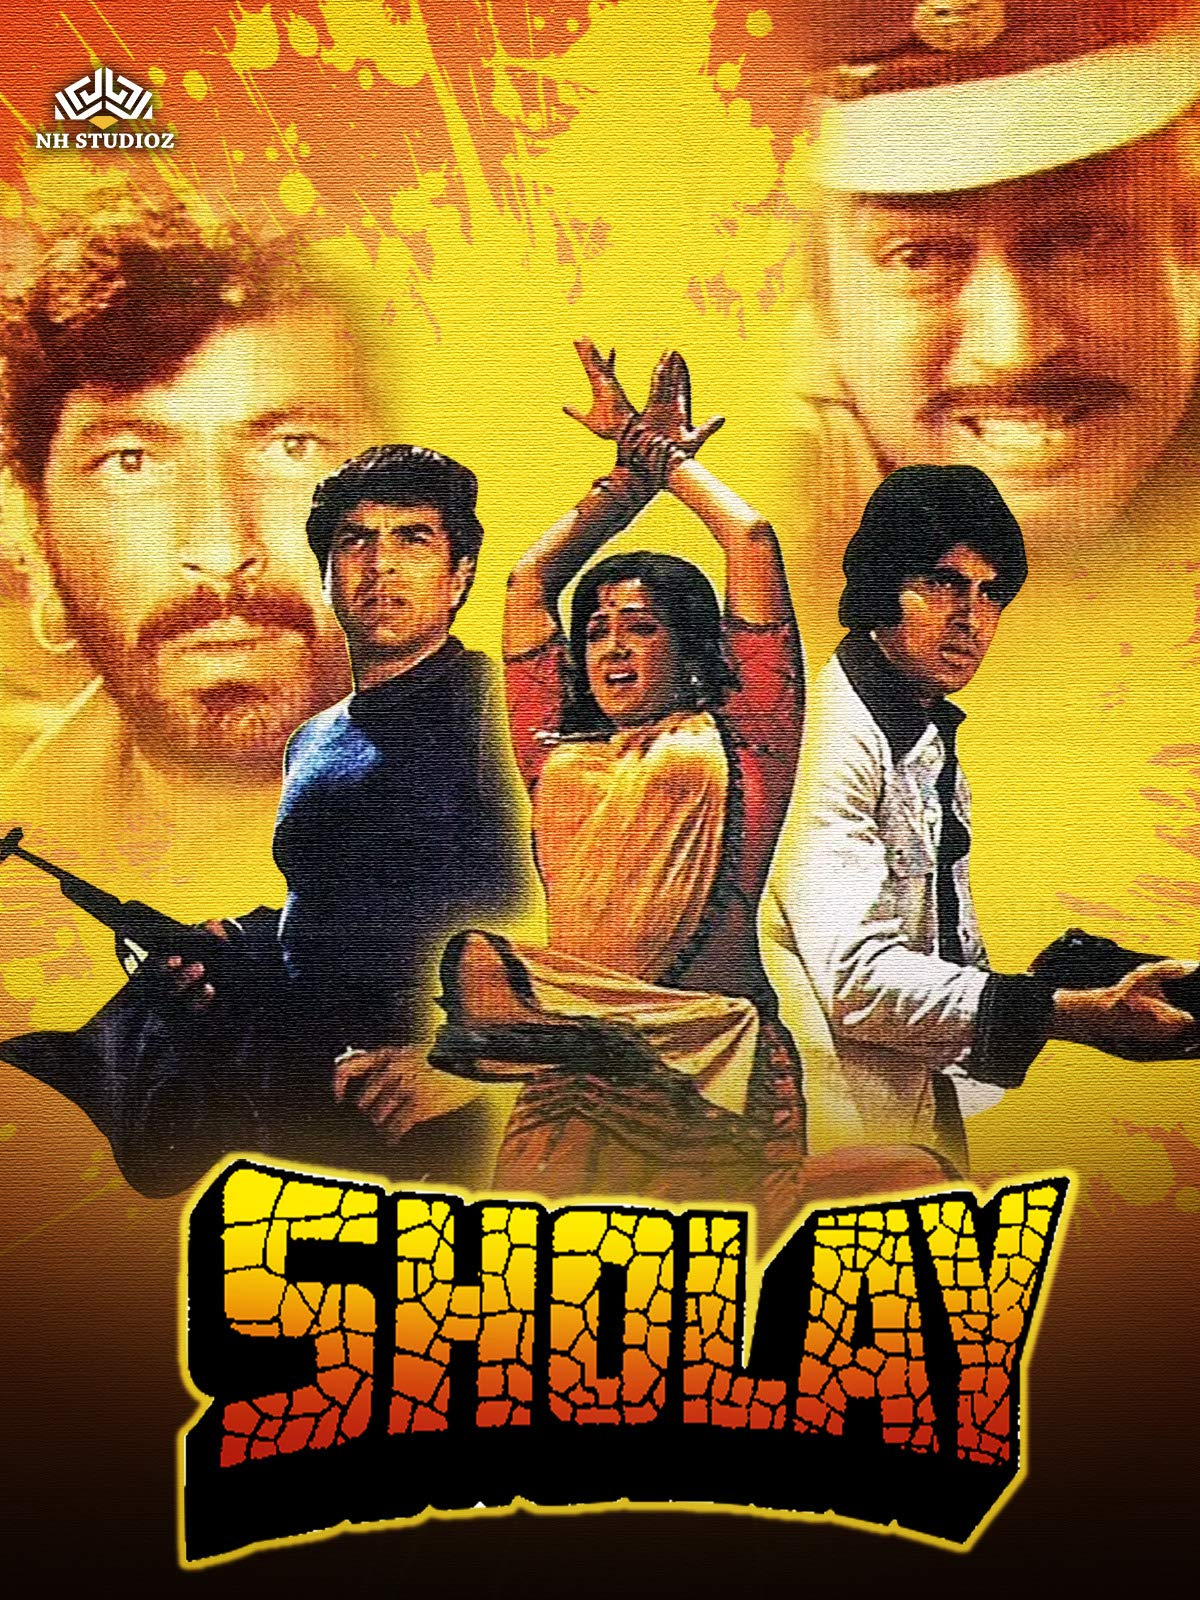 Amazon.com: Watch Sholay | Prime Video